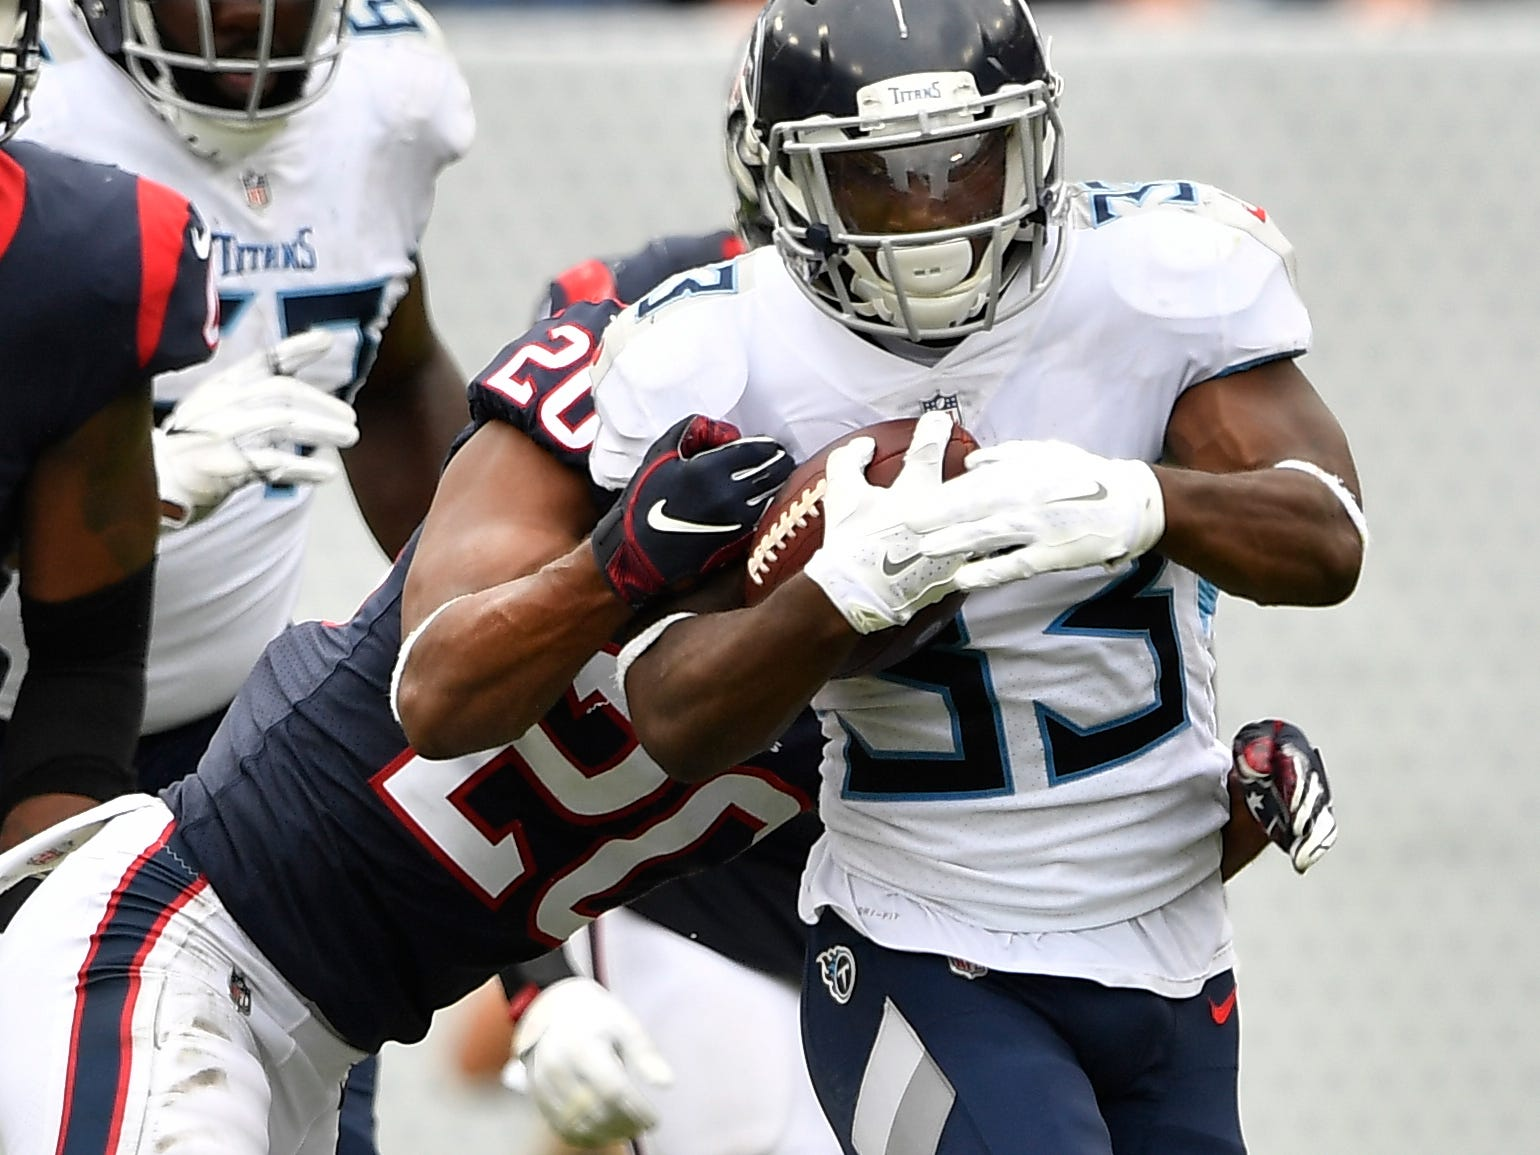 Titans running back Dion Lewis (33) gets wrapped up by Texans safety Justin Reid (20) and cornerback Johnson Bademosi (23) in the second half at Nissan Stadium Sunday, Sept. 16, 2018, in Nashville, Tenn.